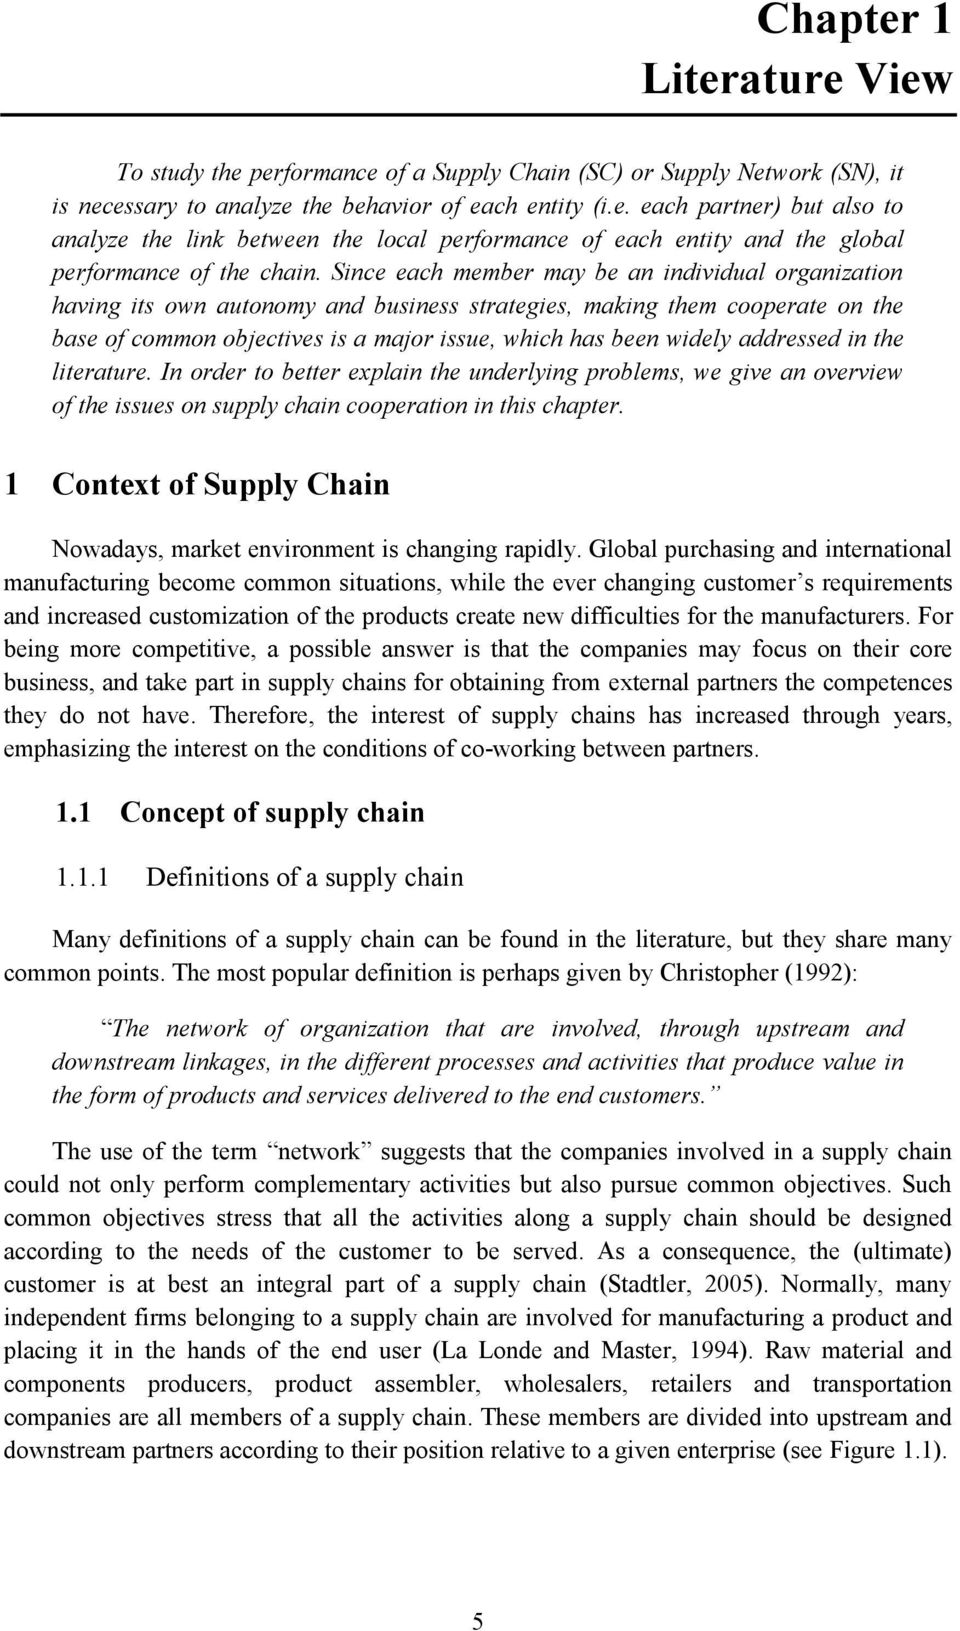 addressed in the literature. In order to better explain the underlying problems, we give an overview of the issues on supply chain cooperation in this chapter.